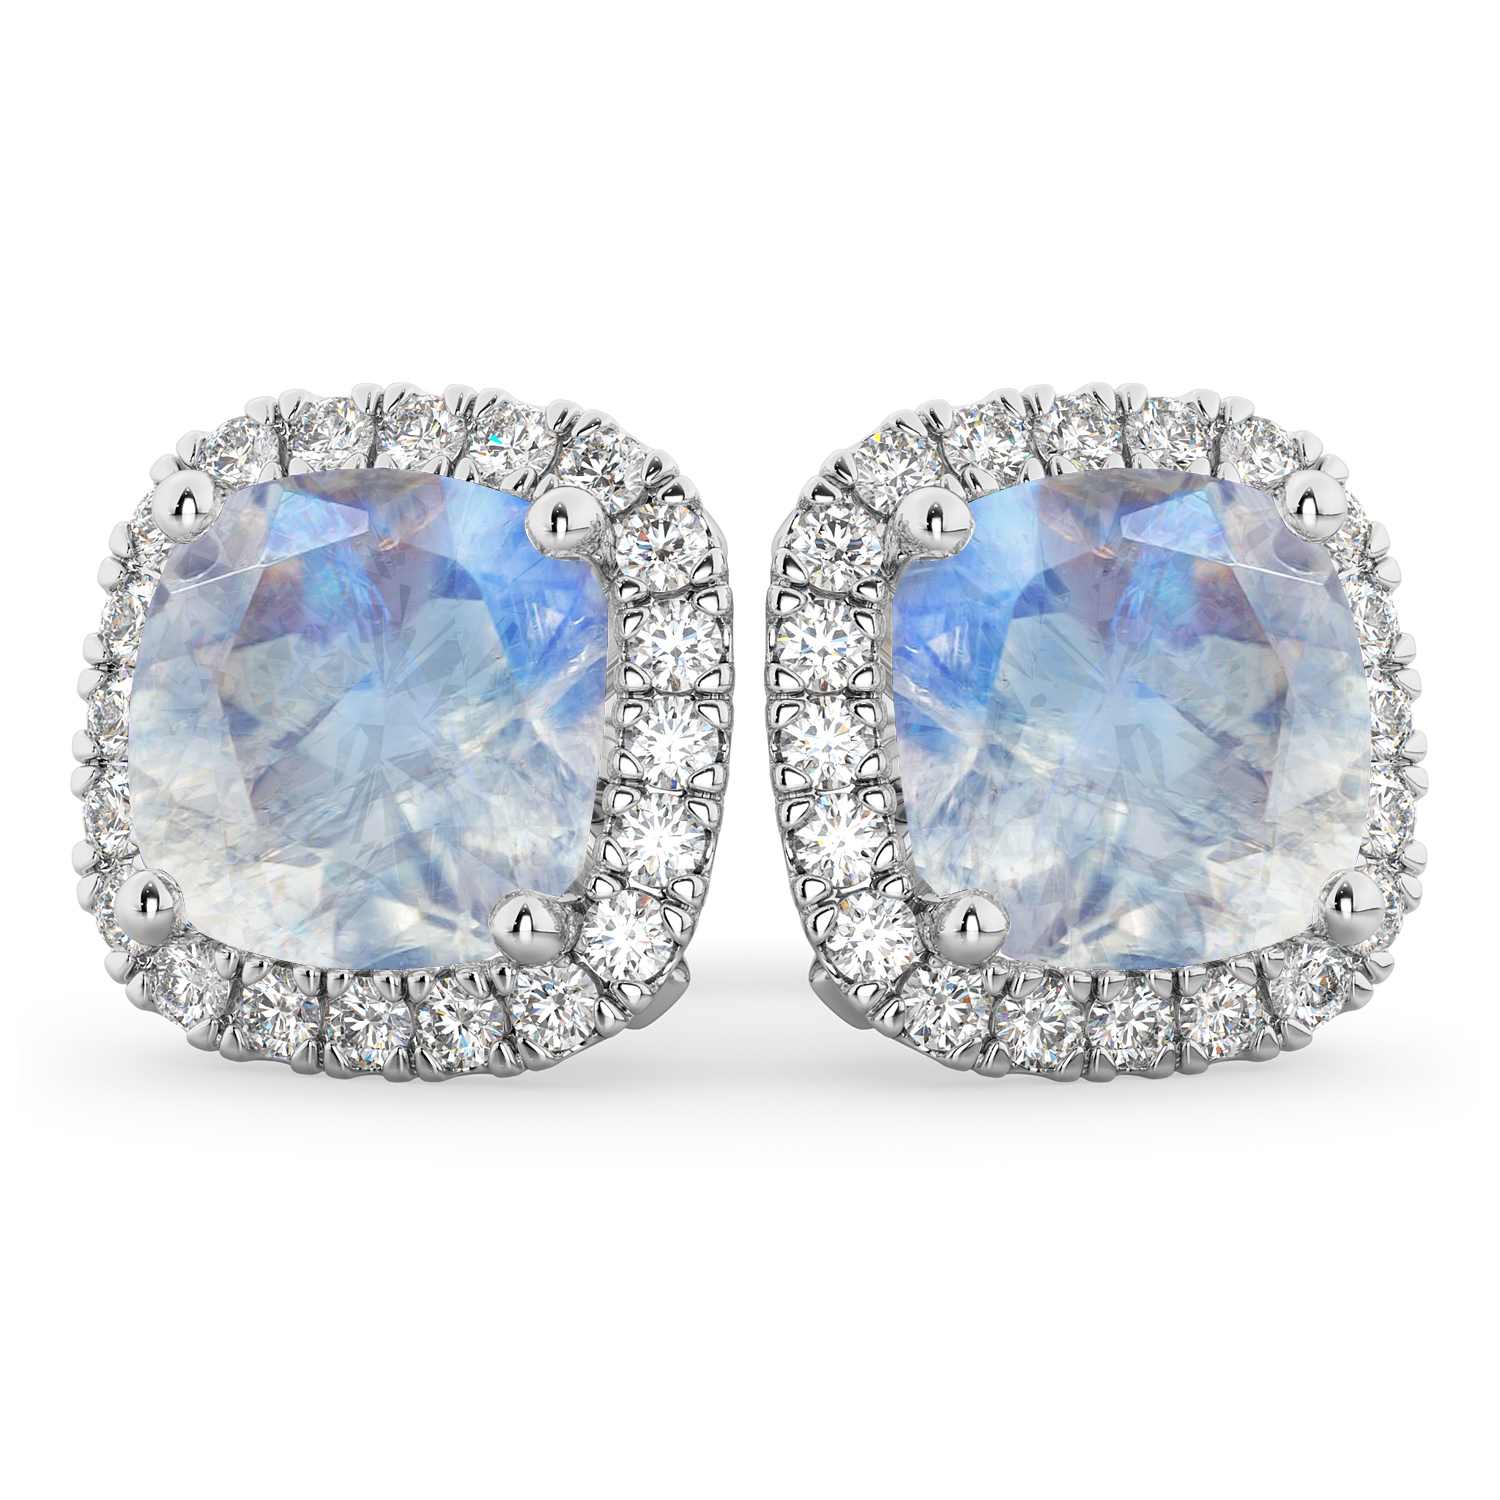 Halo Cushion Moonstone & Diamond Earrings 14k White Gold by Allurez.